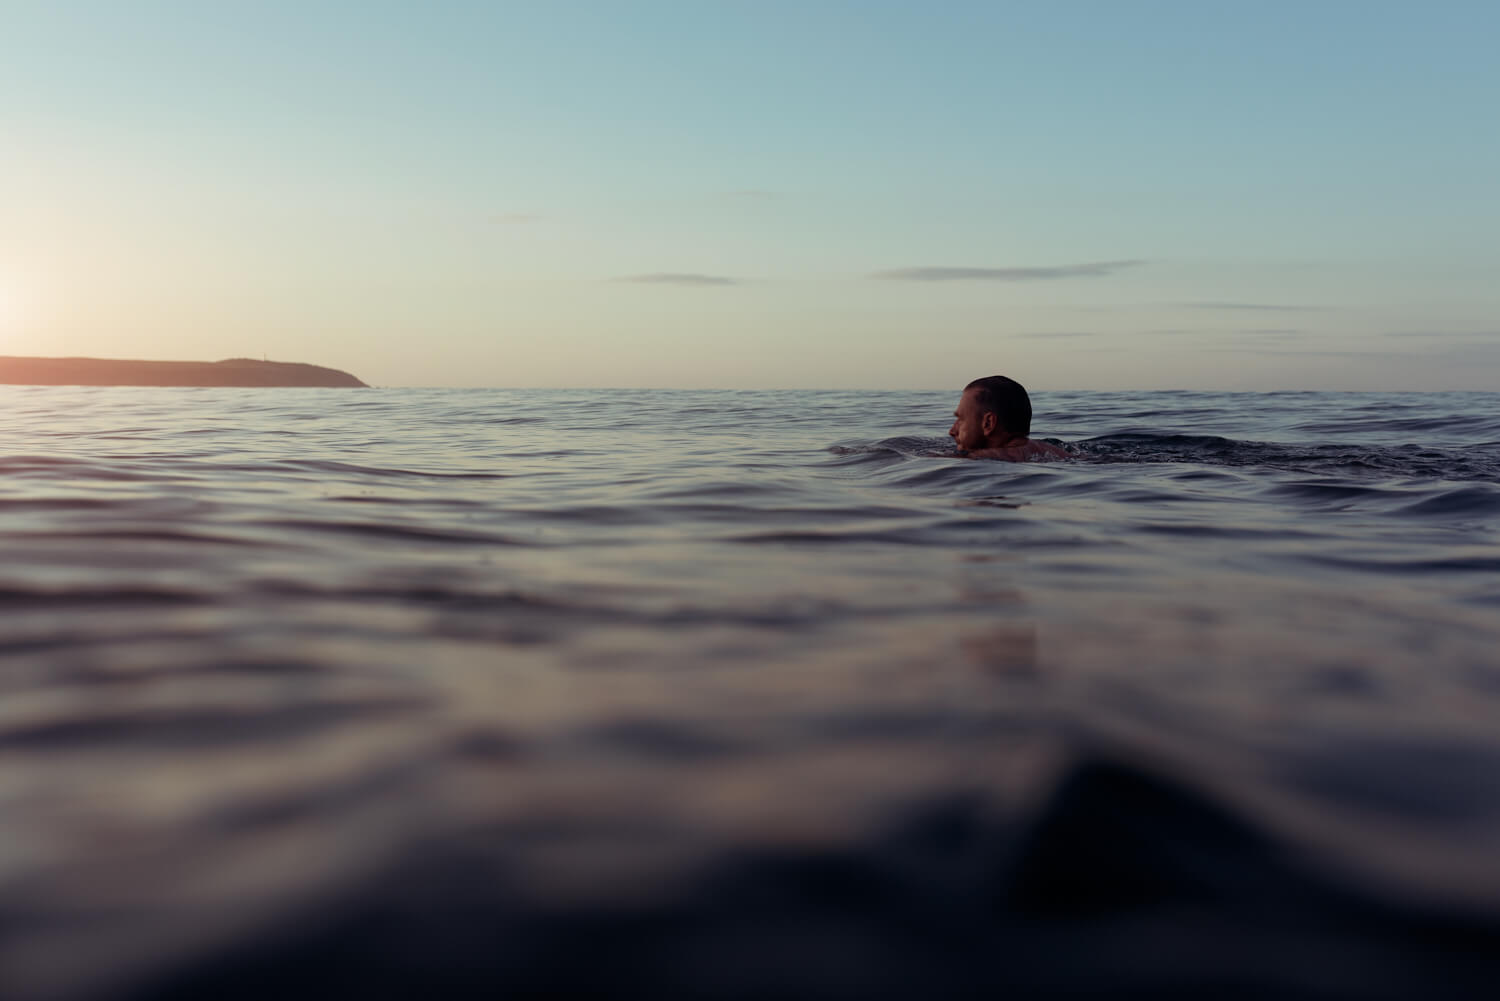 lifestyle photographer Tim Cole shoots morning swimmer out at sea